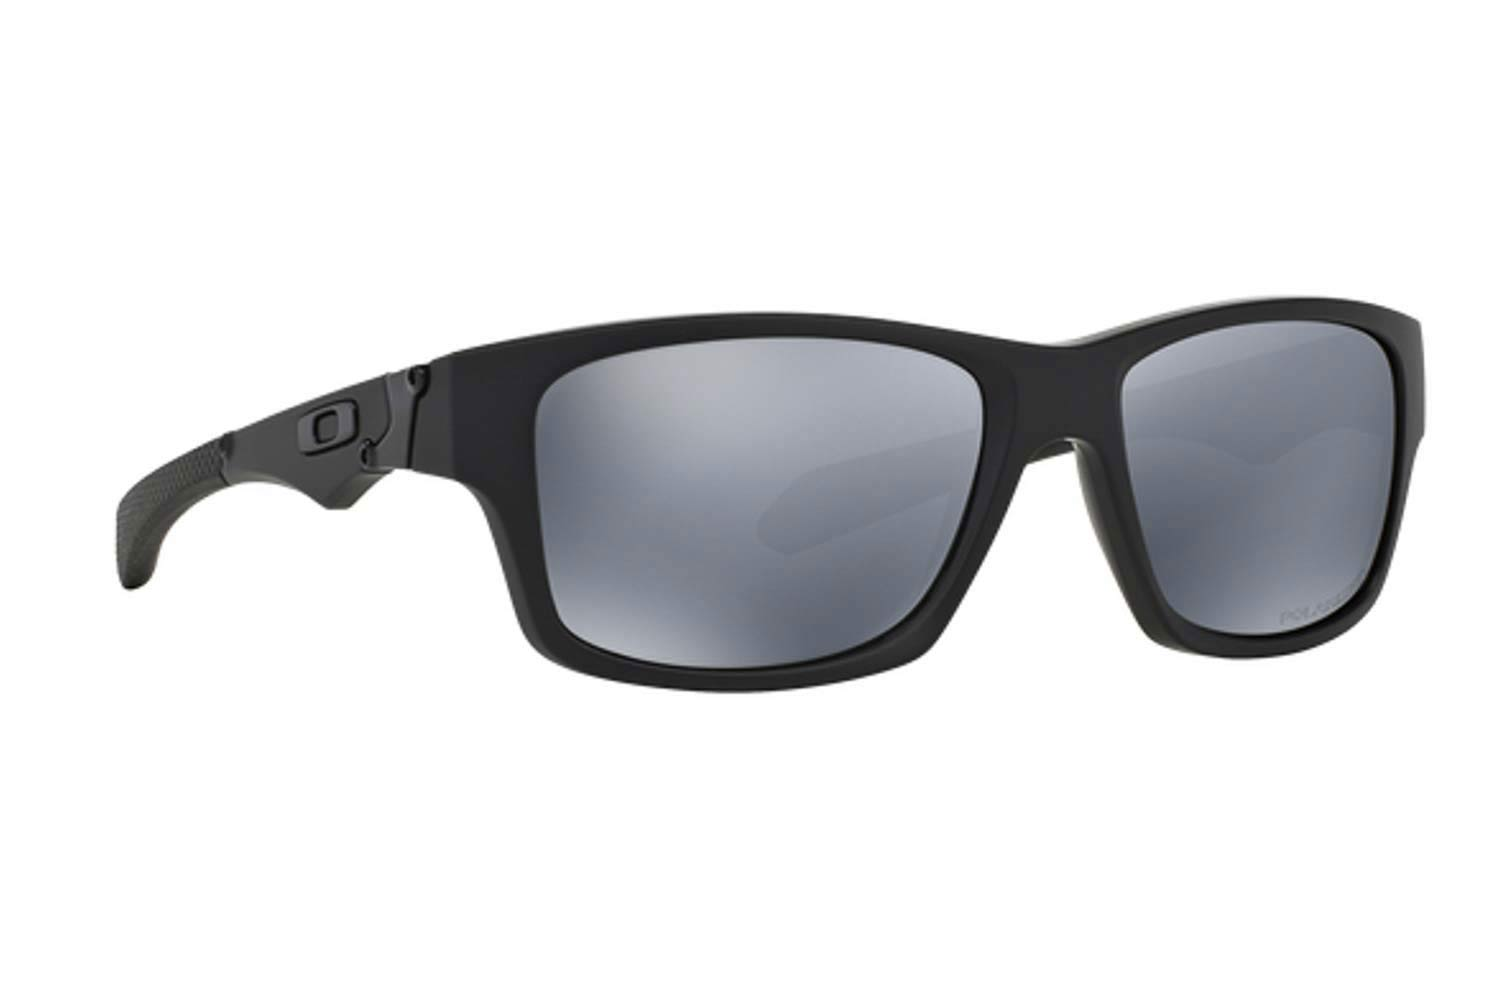 09b6f85d35 Extreme ZOOM Eye-Shop. Add to Cart. Sunglasses Oakley Jupiter Squared 9135  ...